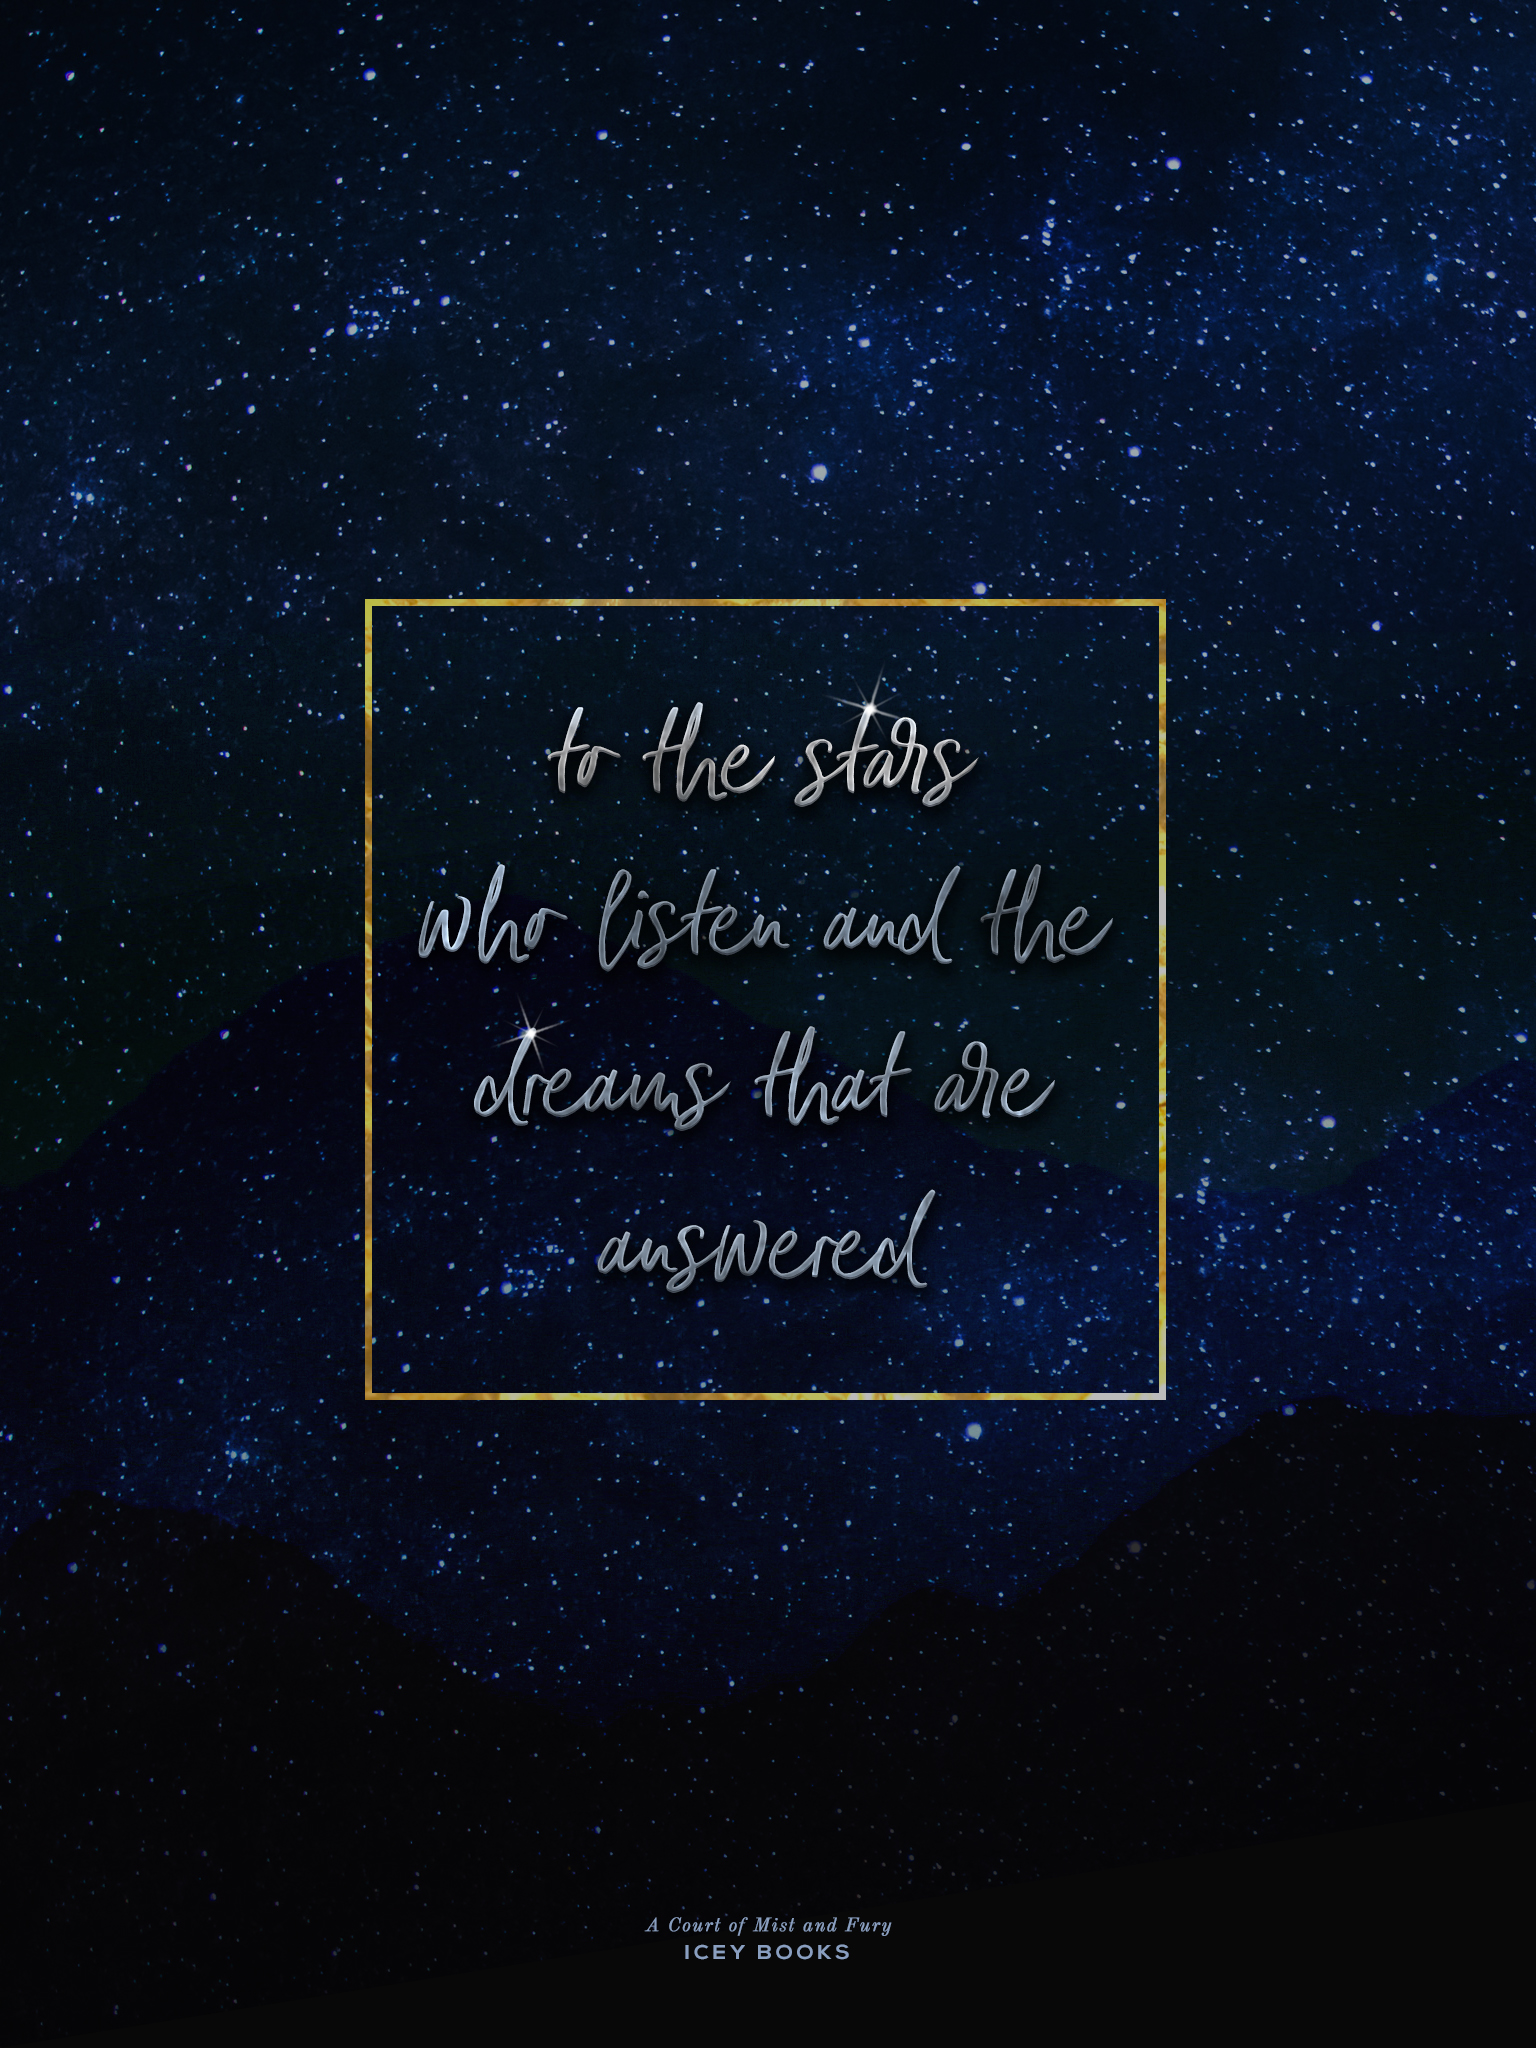 Hd Quote Wallpapers For Iphone 6 Quote Candy 55 Download A Wallpaper For A Court Of